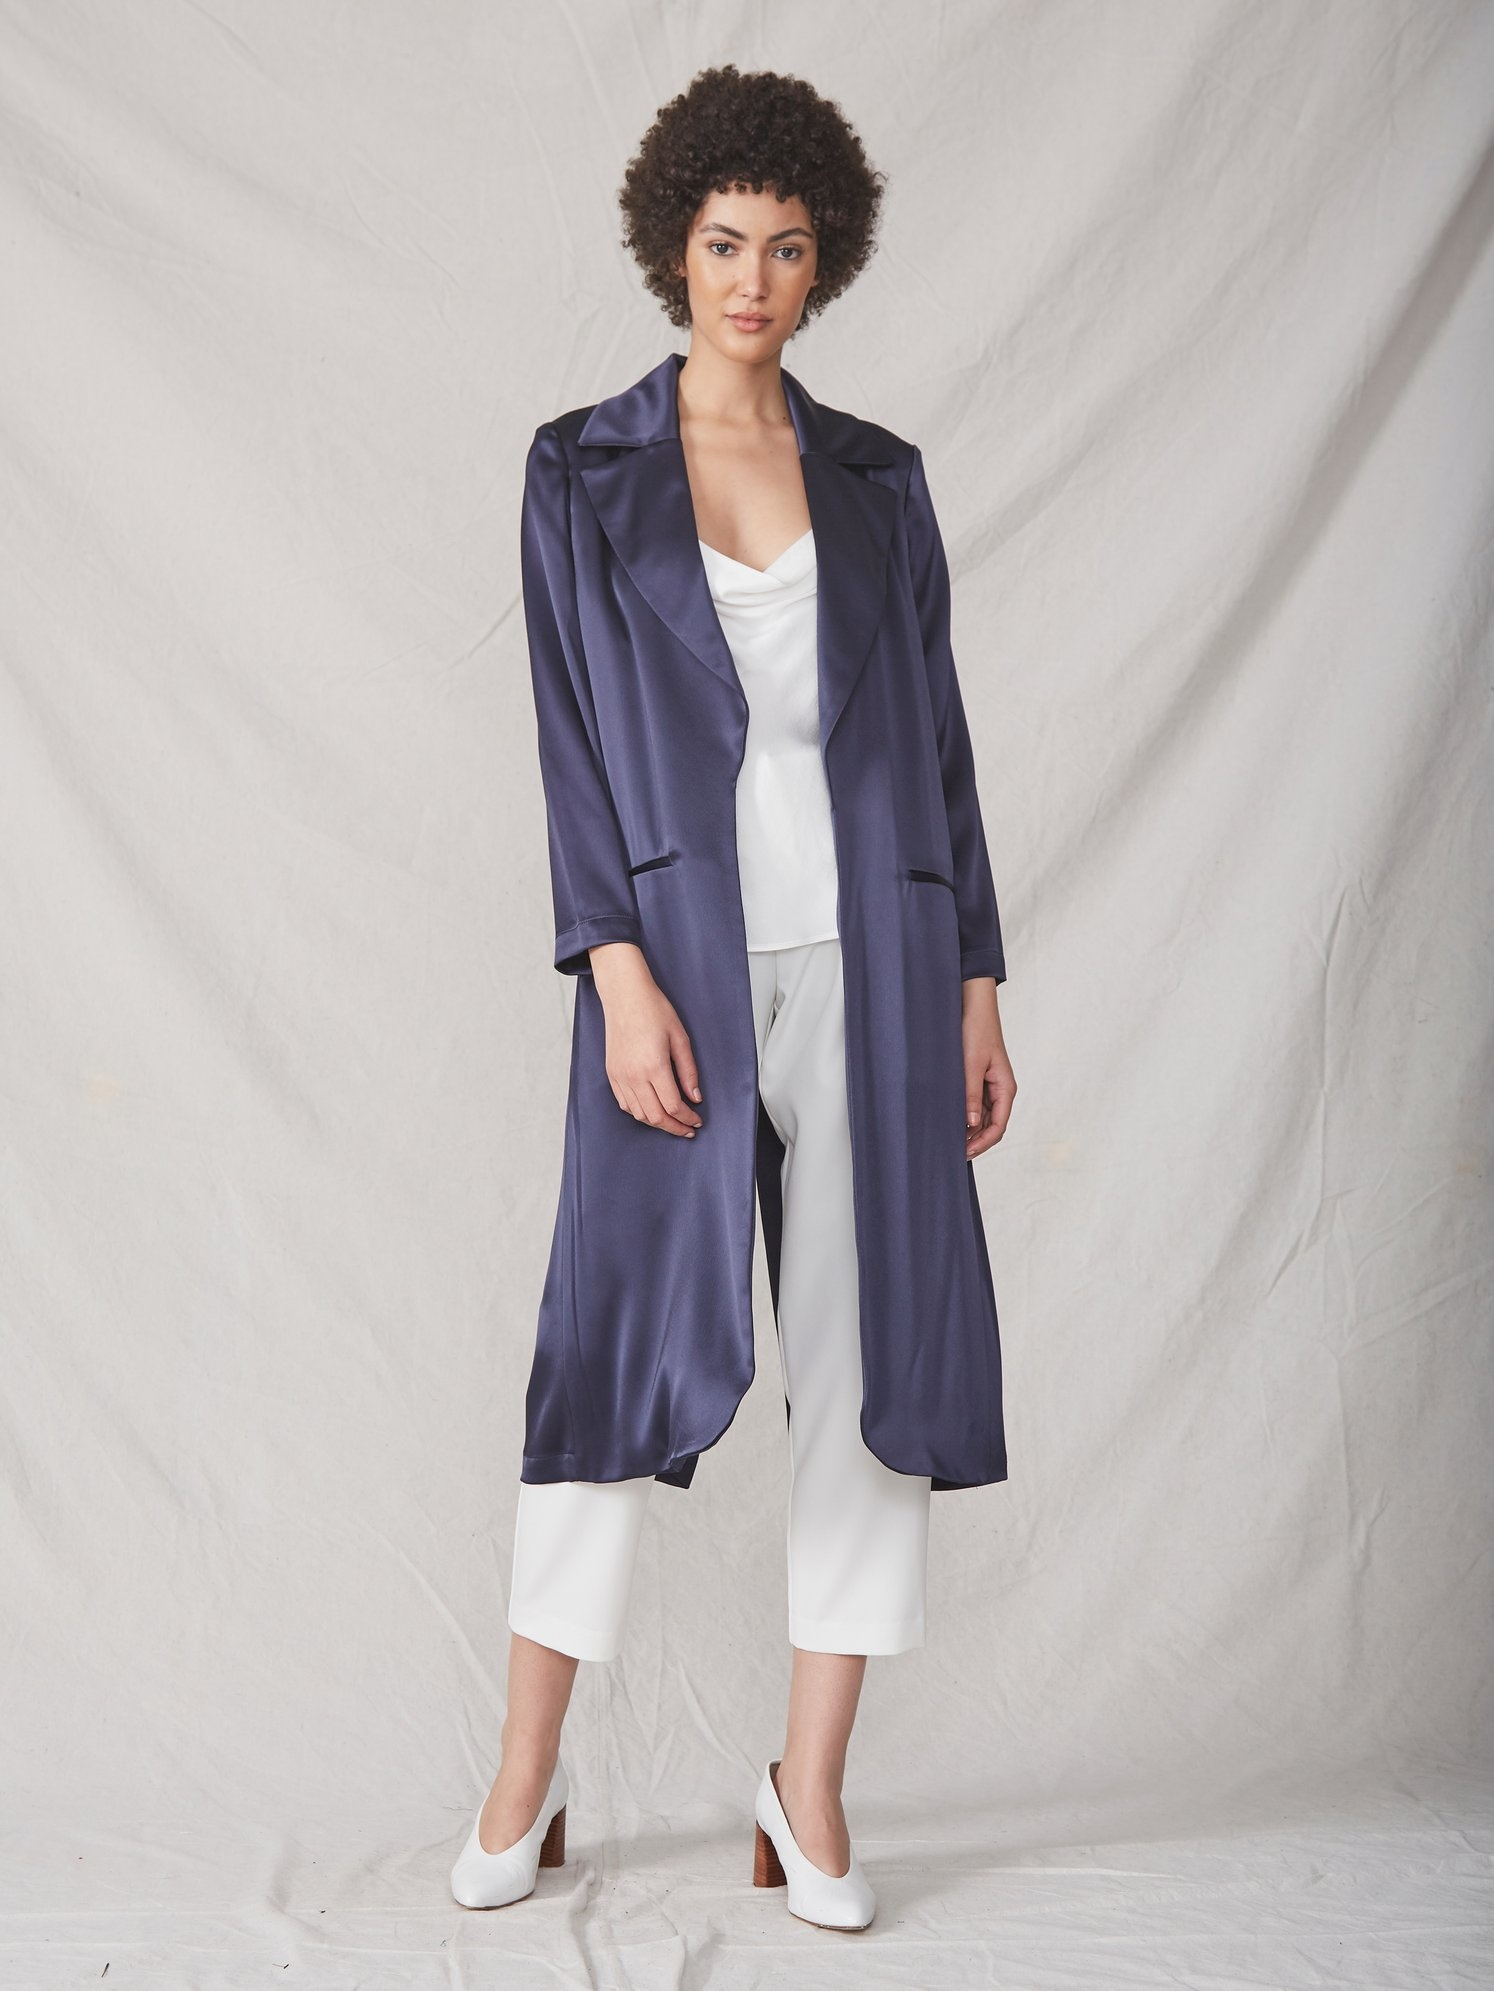 ALLEN SHWARTZ Carmen Evening Jacket